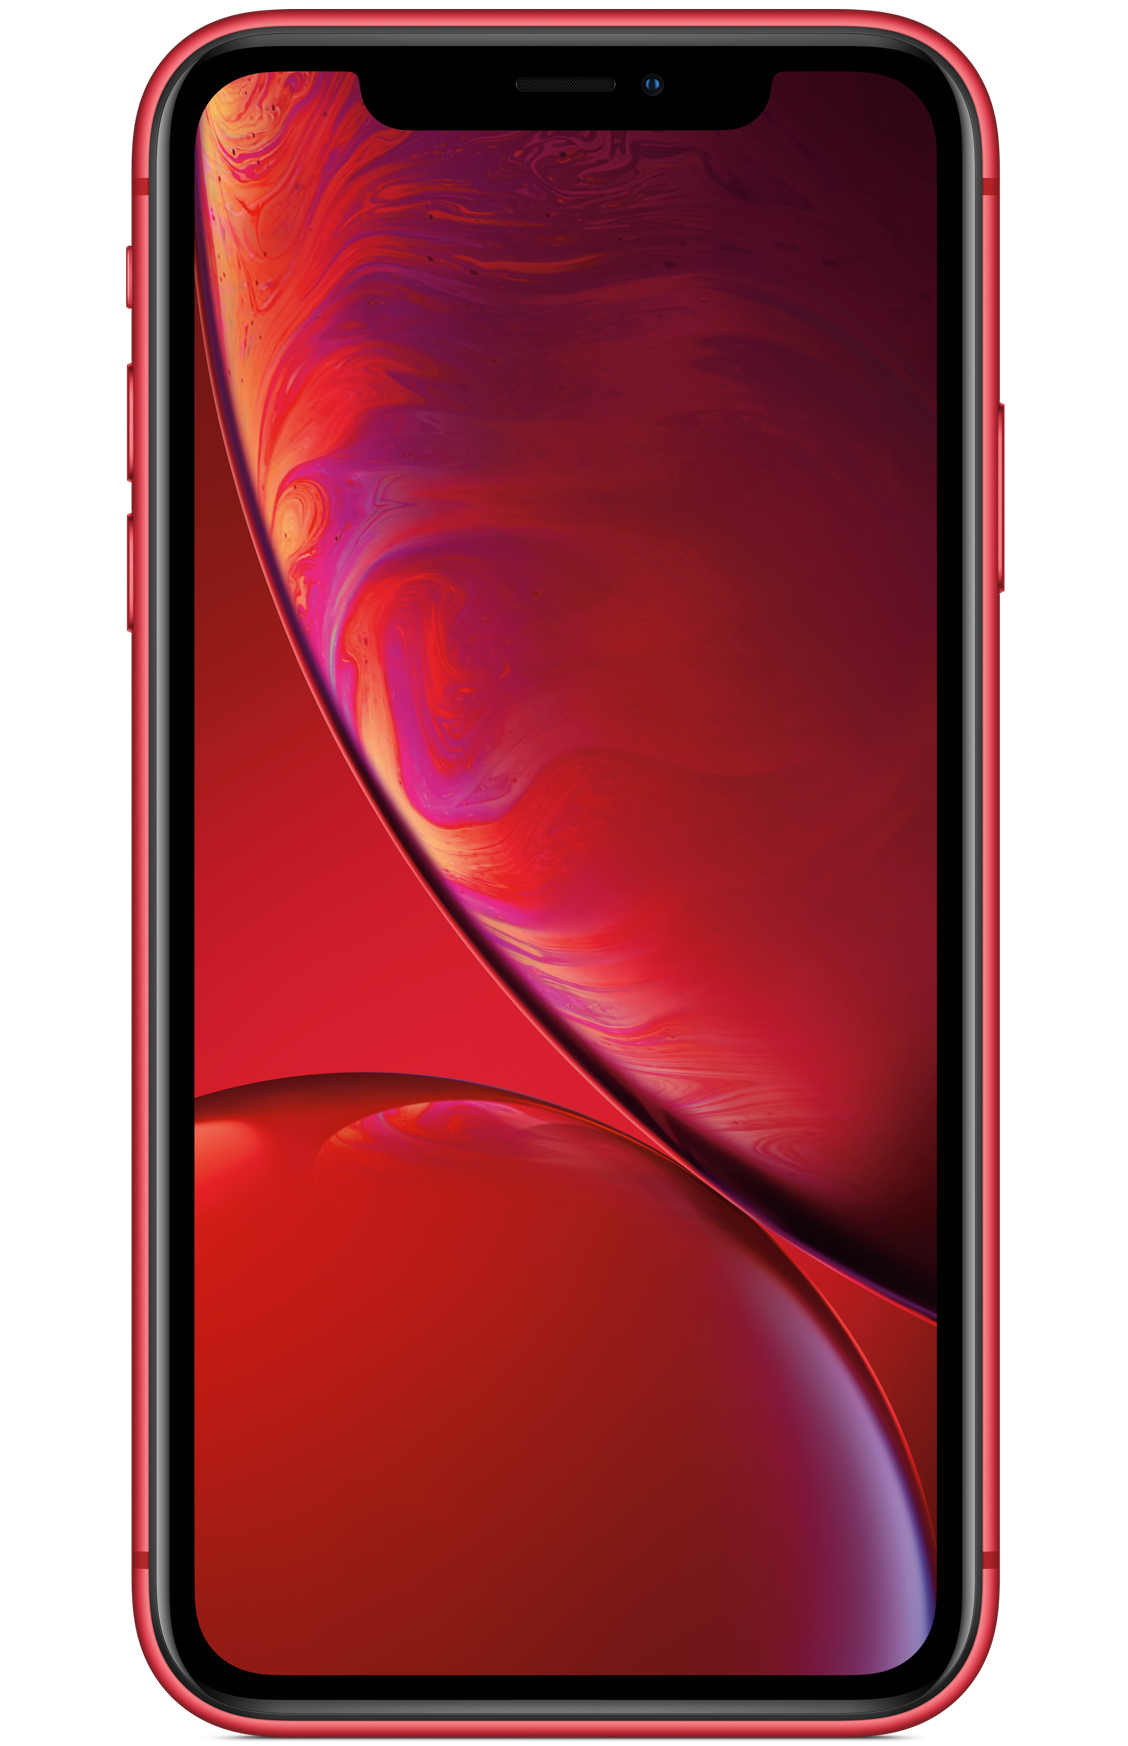 Apple Iphone Xr 128gb Product Red Boost Mobile Iphone Apple Iphone Boost Mobile